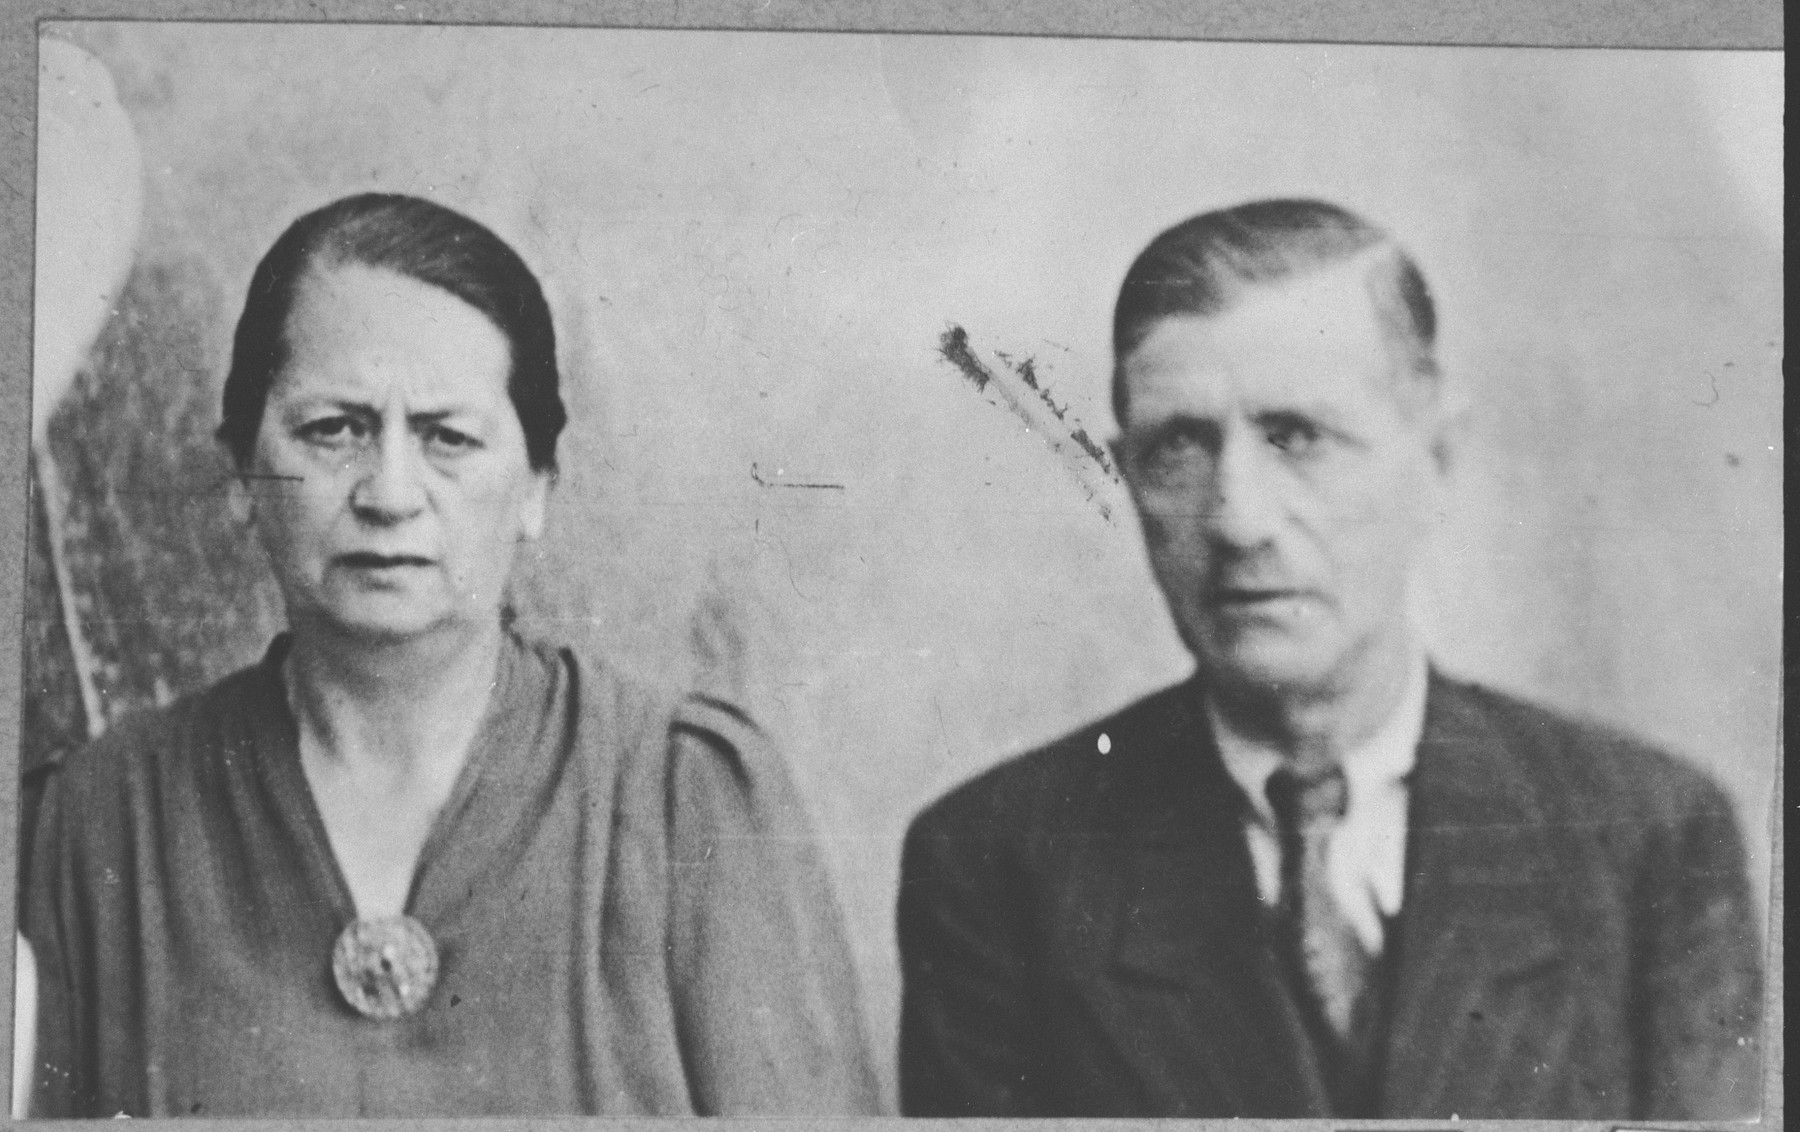 Portrait of David Kalderon and his wife, Ana.  He was an entrepeneur.  They lived at Tekshuiska 2 in Bitola.